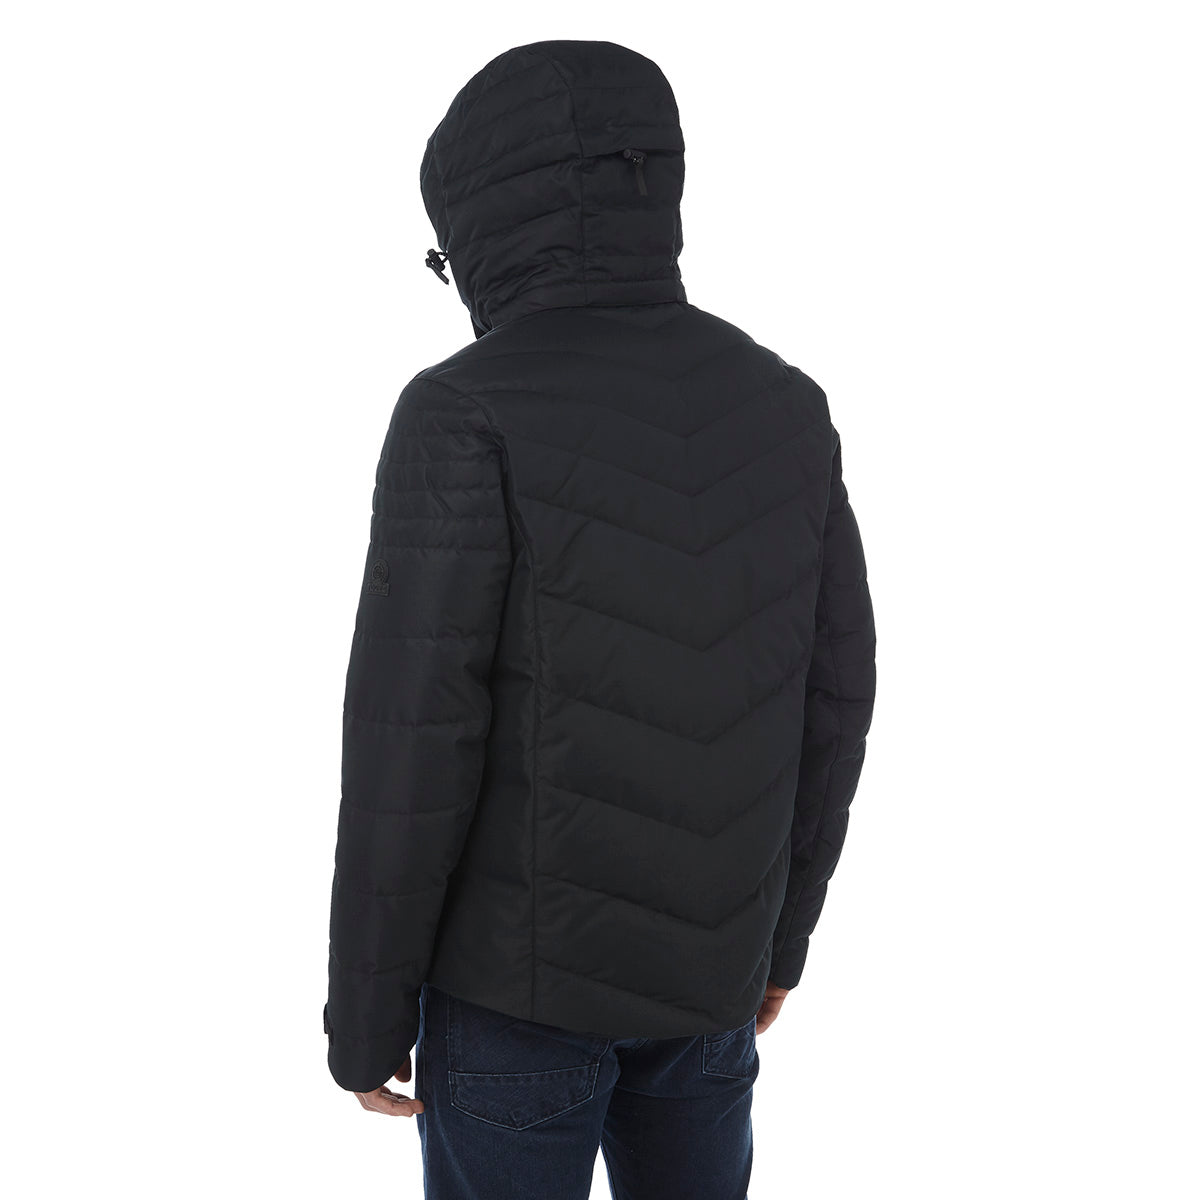 Scar Mens Down Insulated Ski Jacket - Black image 4